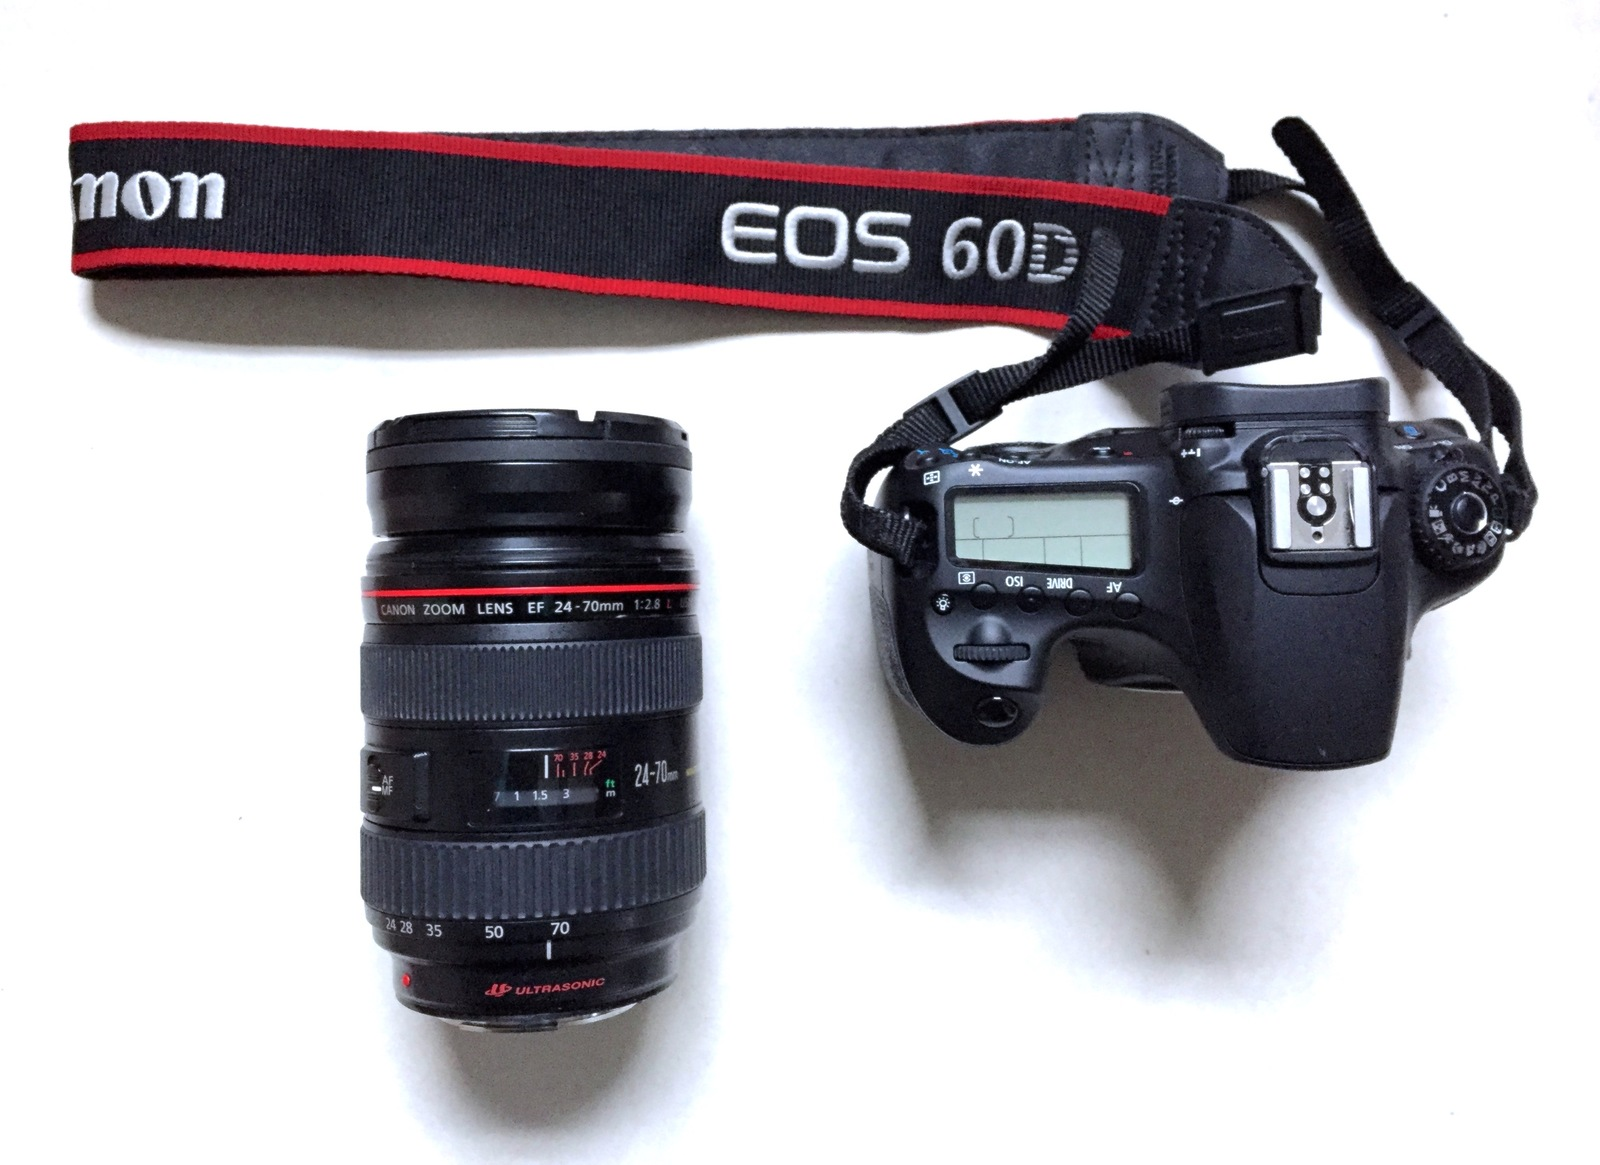 Rent a Canon DSLR Kit (Canon 24-70mm f2 8, EOS 60D, Plus Extras), Best  Prices   ShareGrid Chicago